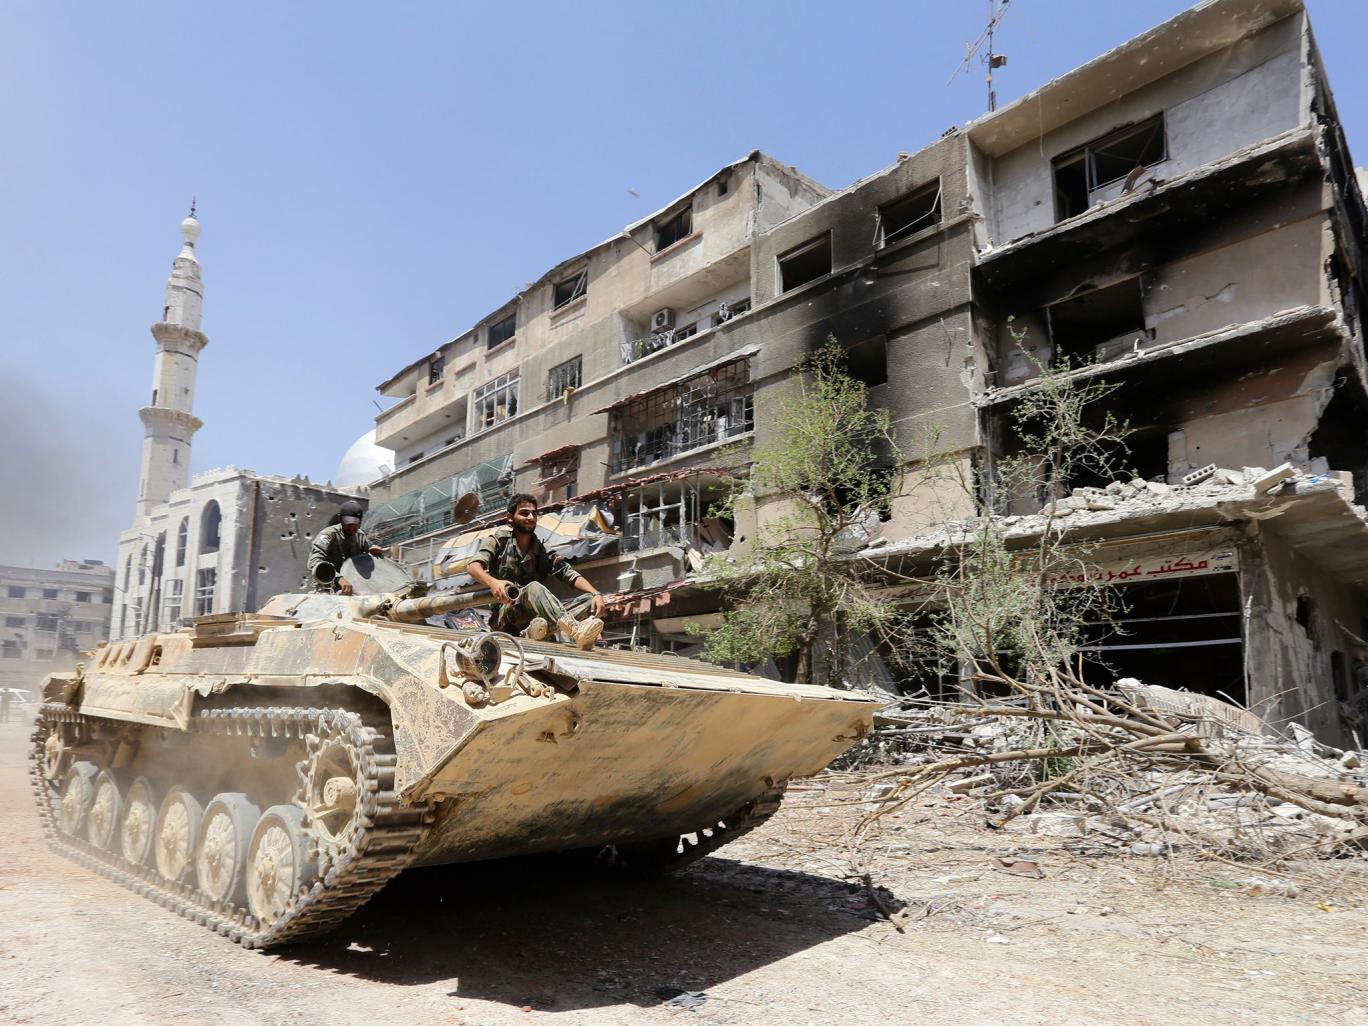 Syrian government troops sit atop a tank as they drive past a damaged building in Mleiha on the outskirts of the capital Damascus on August 15, 2014